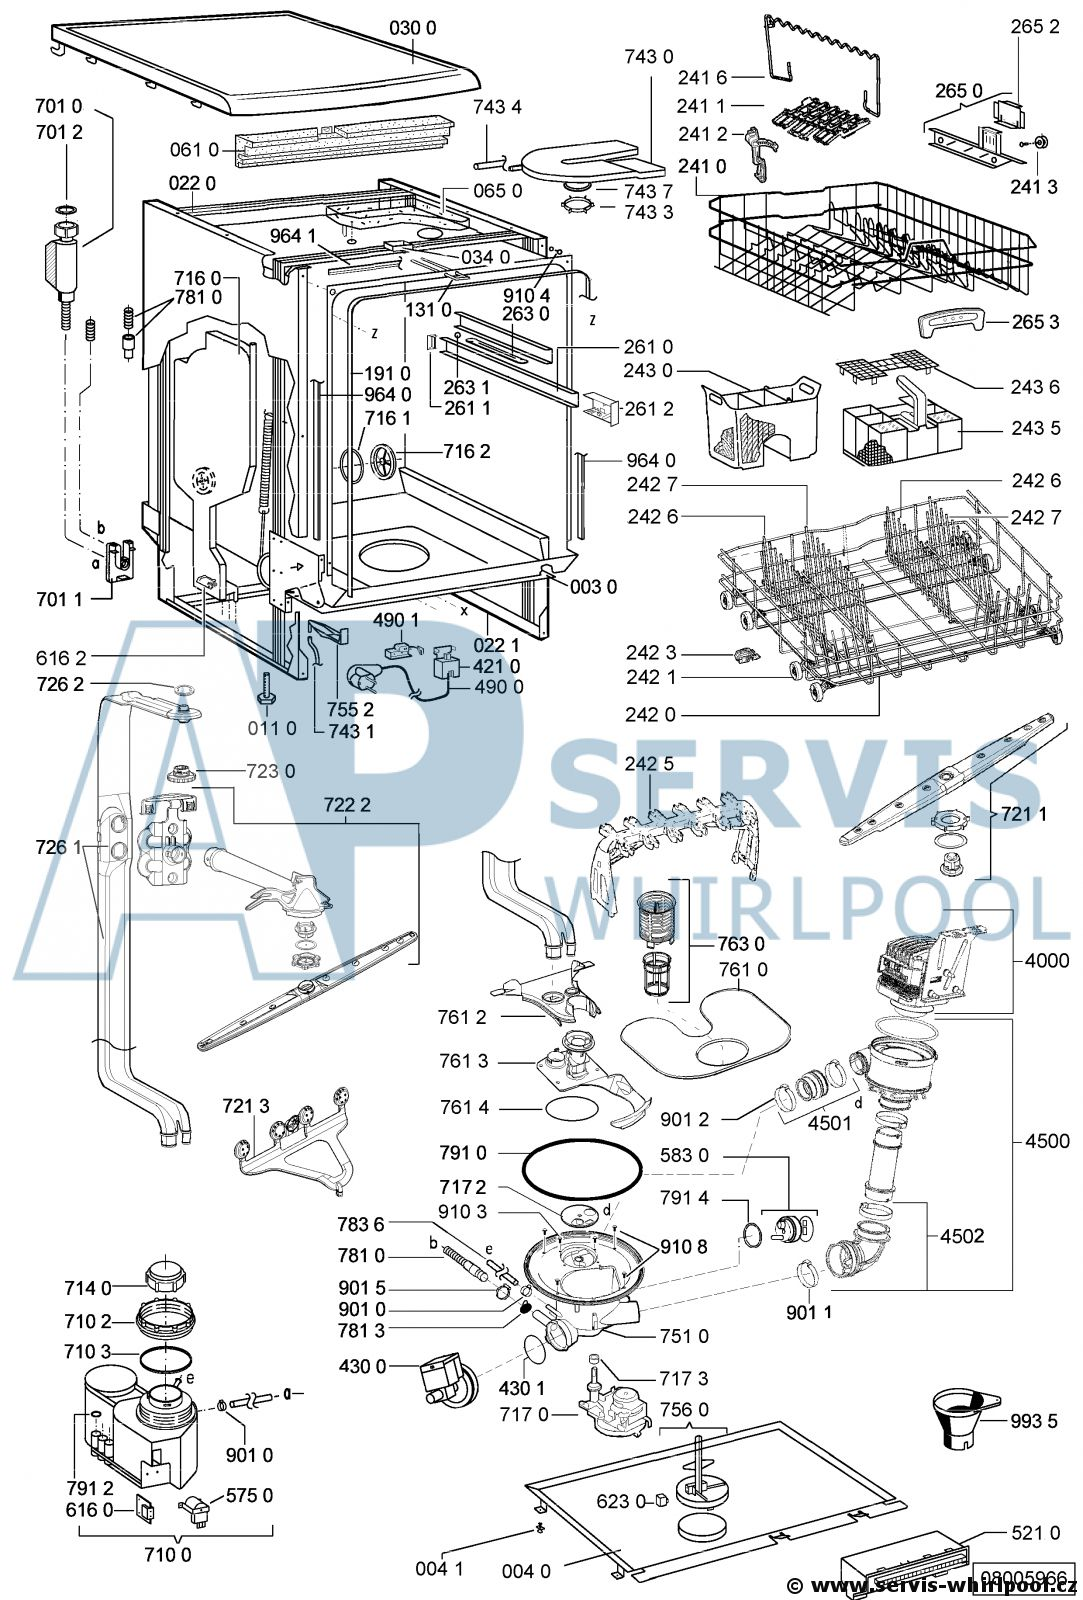 Adp 6937 Wh Servis Whirlpool